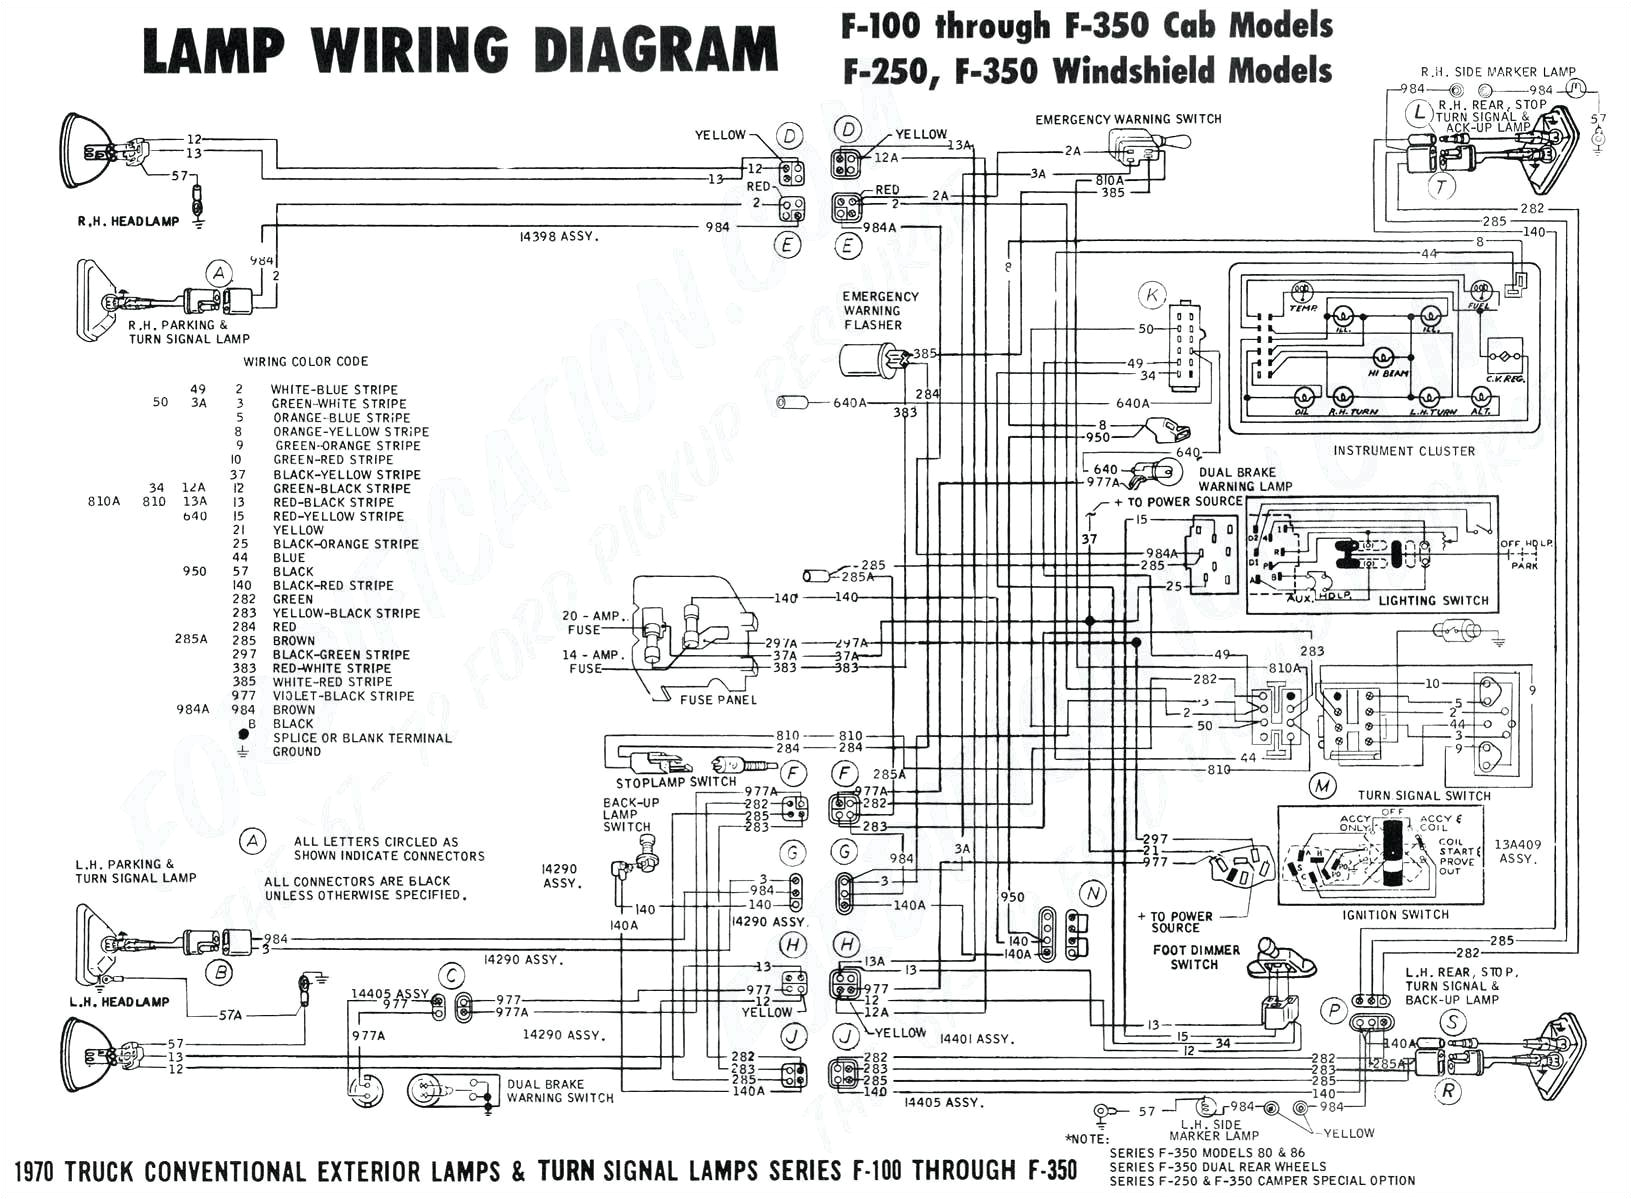 Samsung sod14c Wiring Diagram Wiring Samsung Schematic Smm Pircam Wiring Diagram Article Review